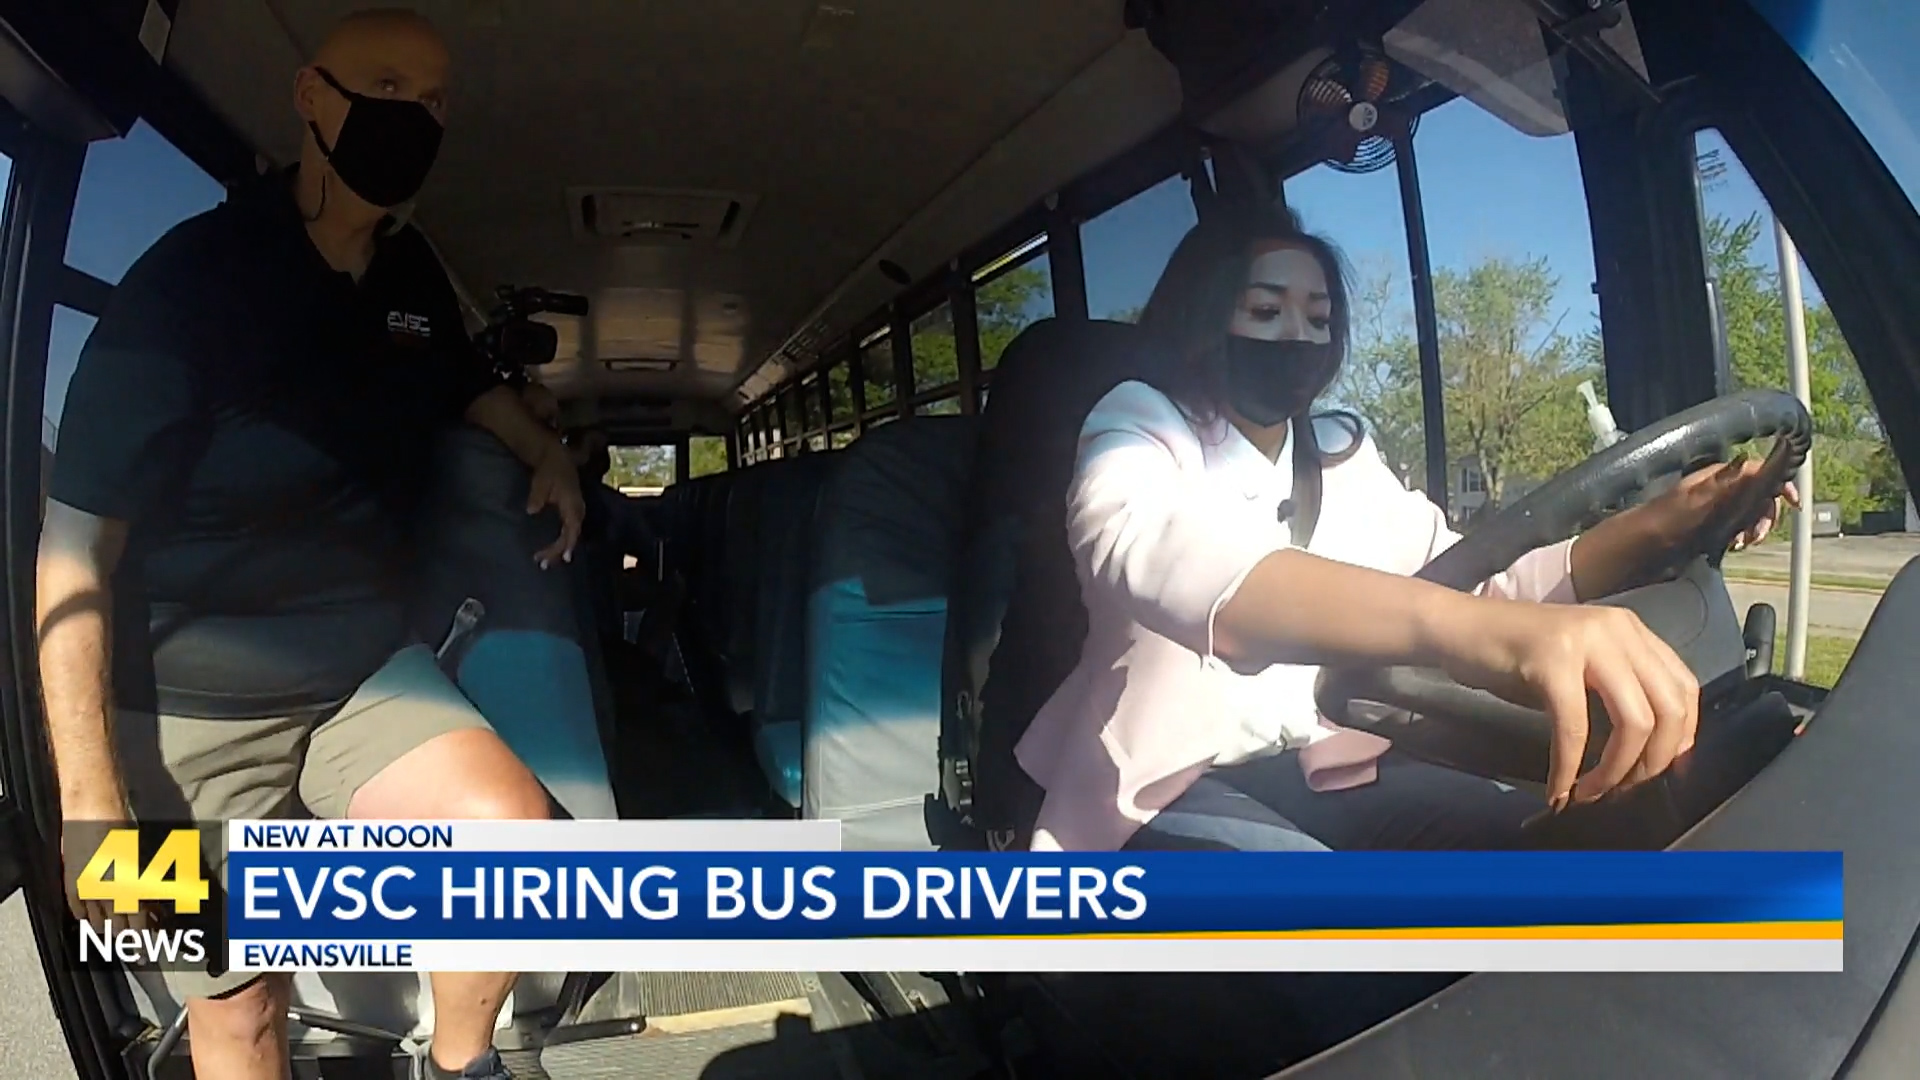 Image for EVSC Hiring Bus Drivers